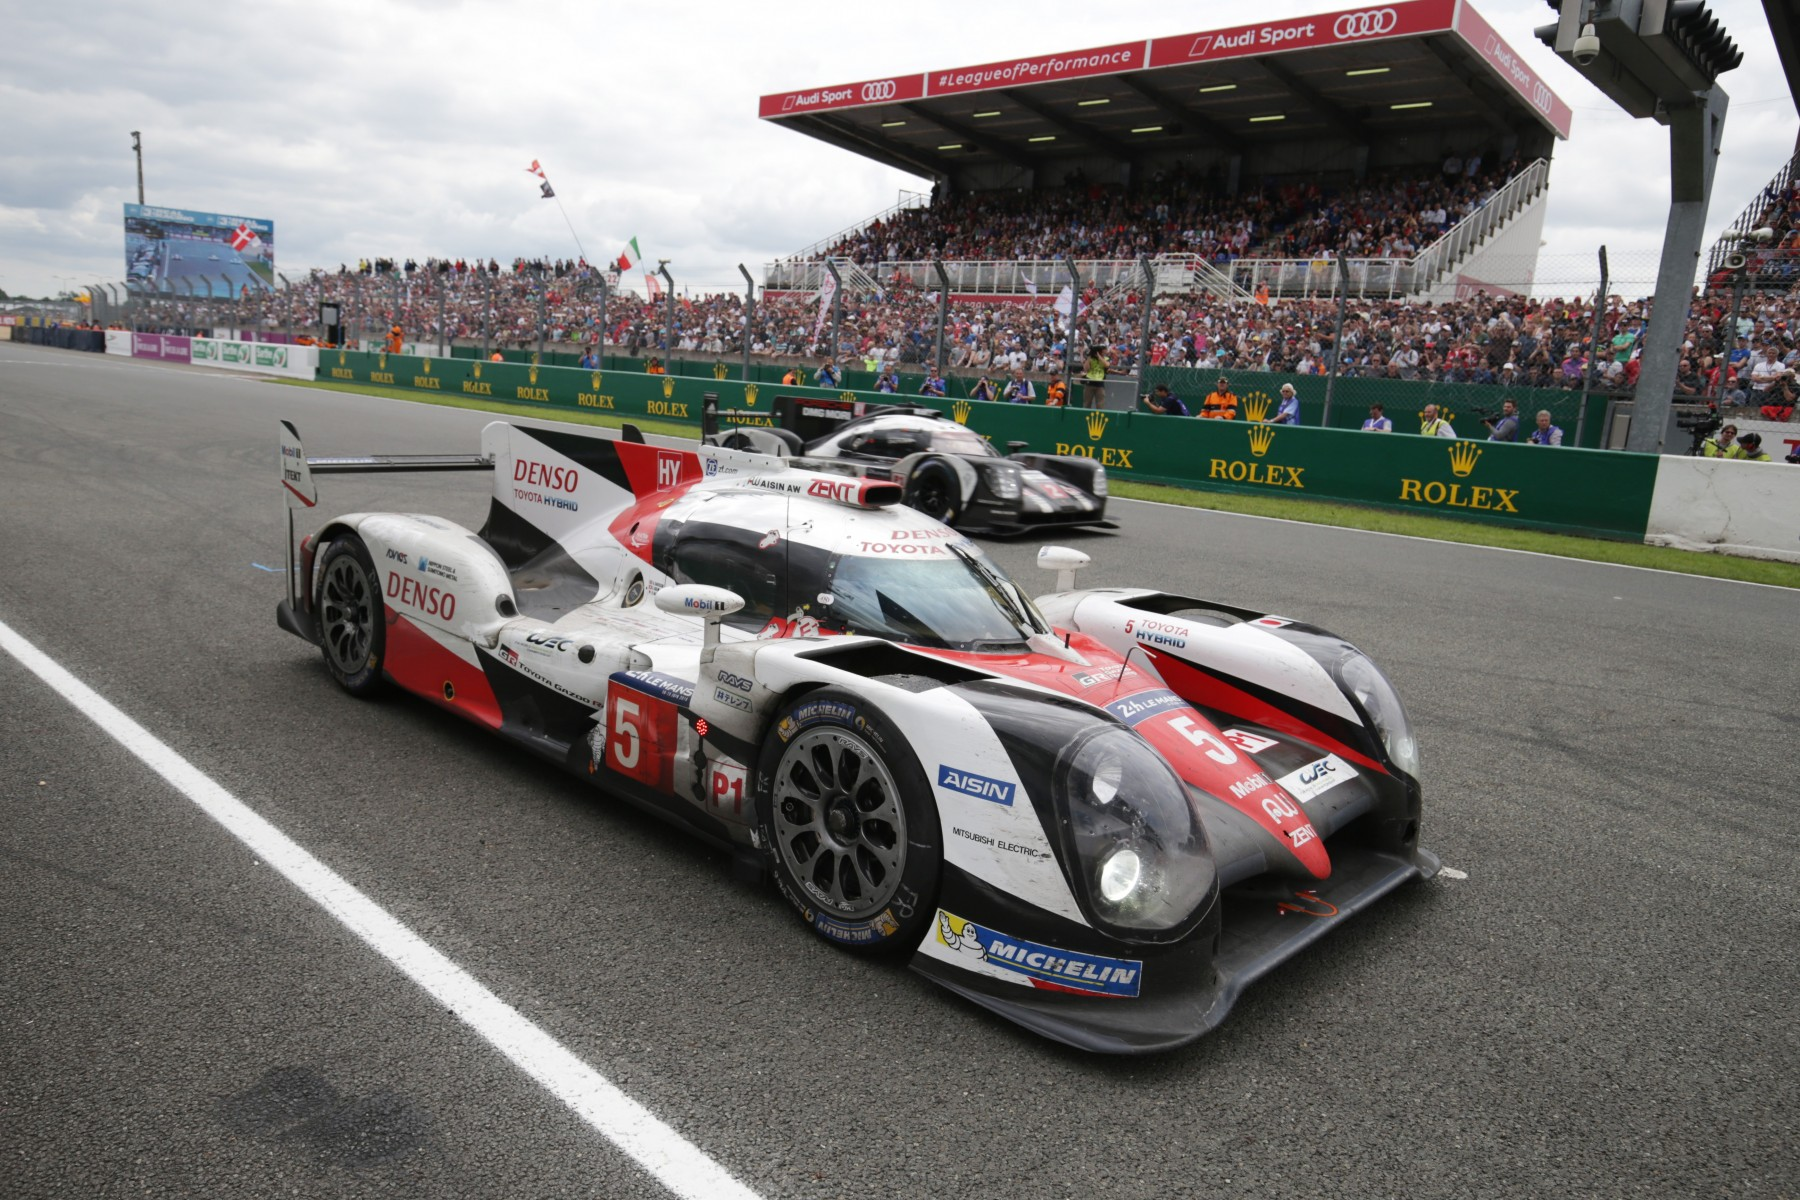 HEARTBREAK FOR TOYOTA GAZOO RACING AT LE MANS